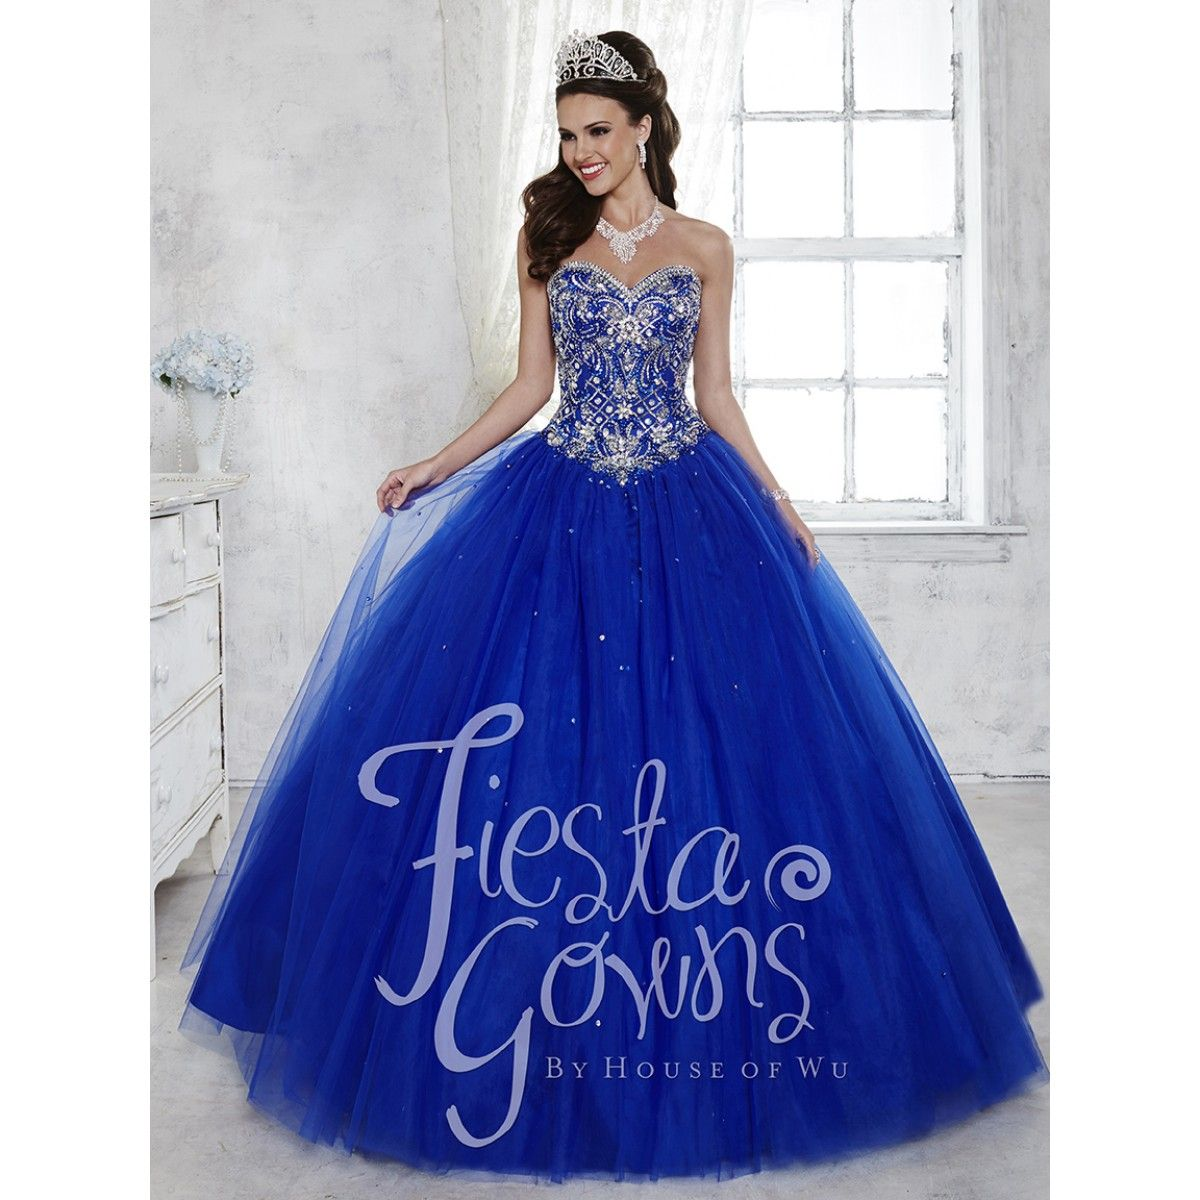 Fiesta Quinceanera 56281 Gowns Marry Go Round The Prom Place Eau Claire Strum Wi 54701